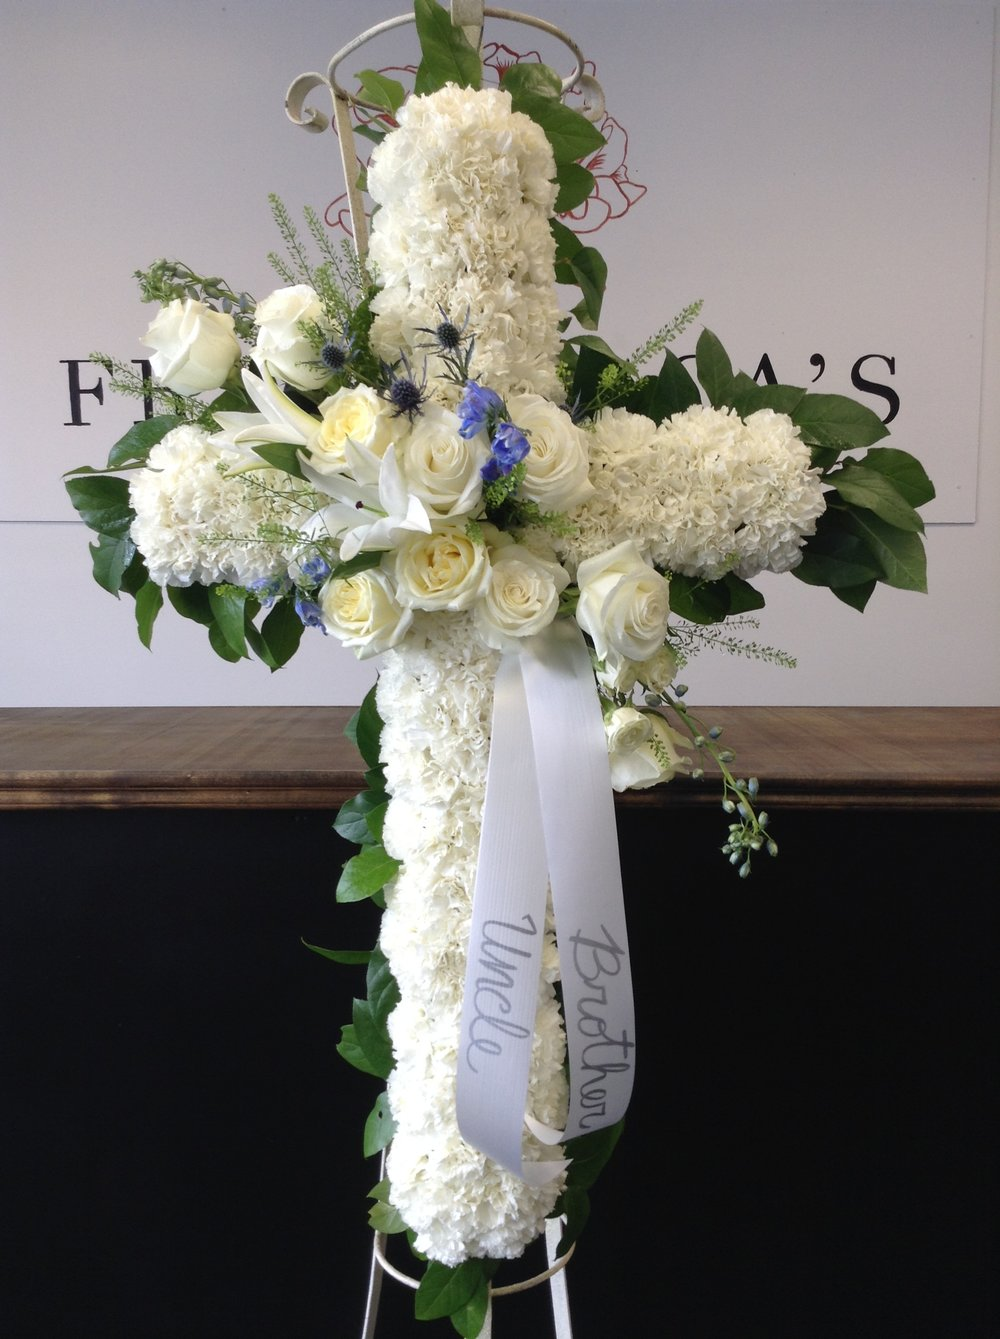 Funeral Crosses Franchescas Events Floral